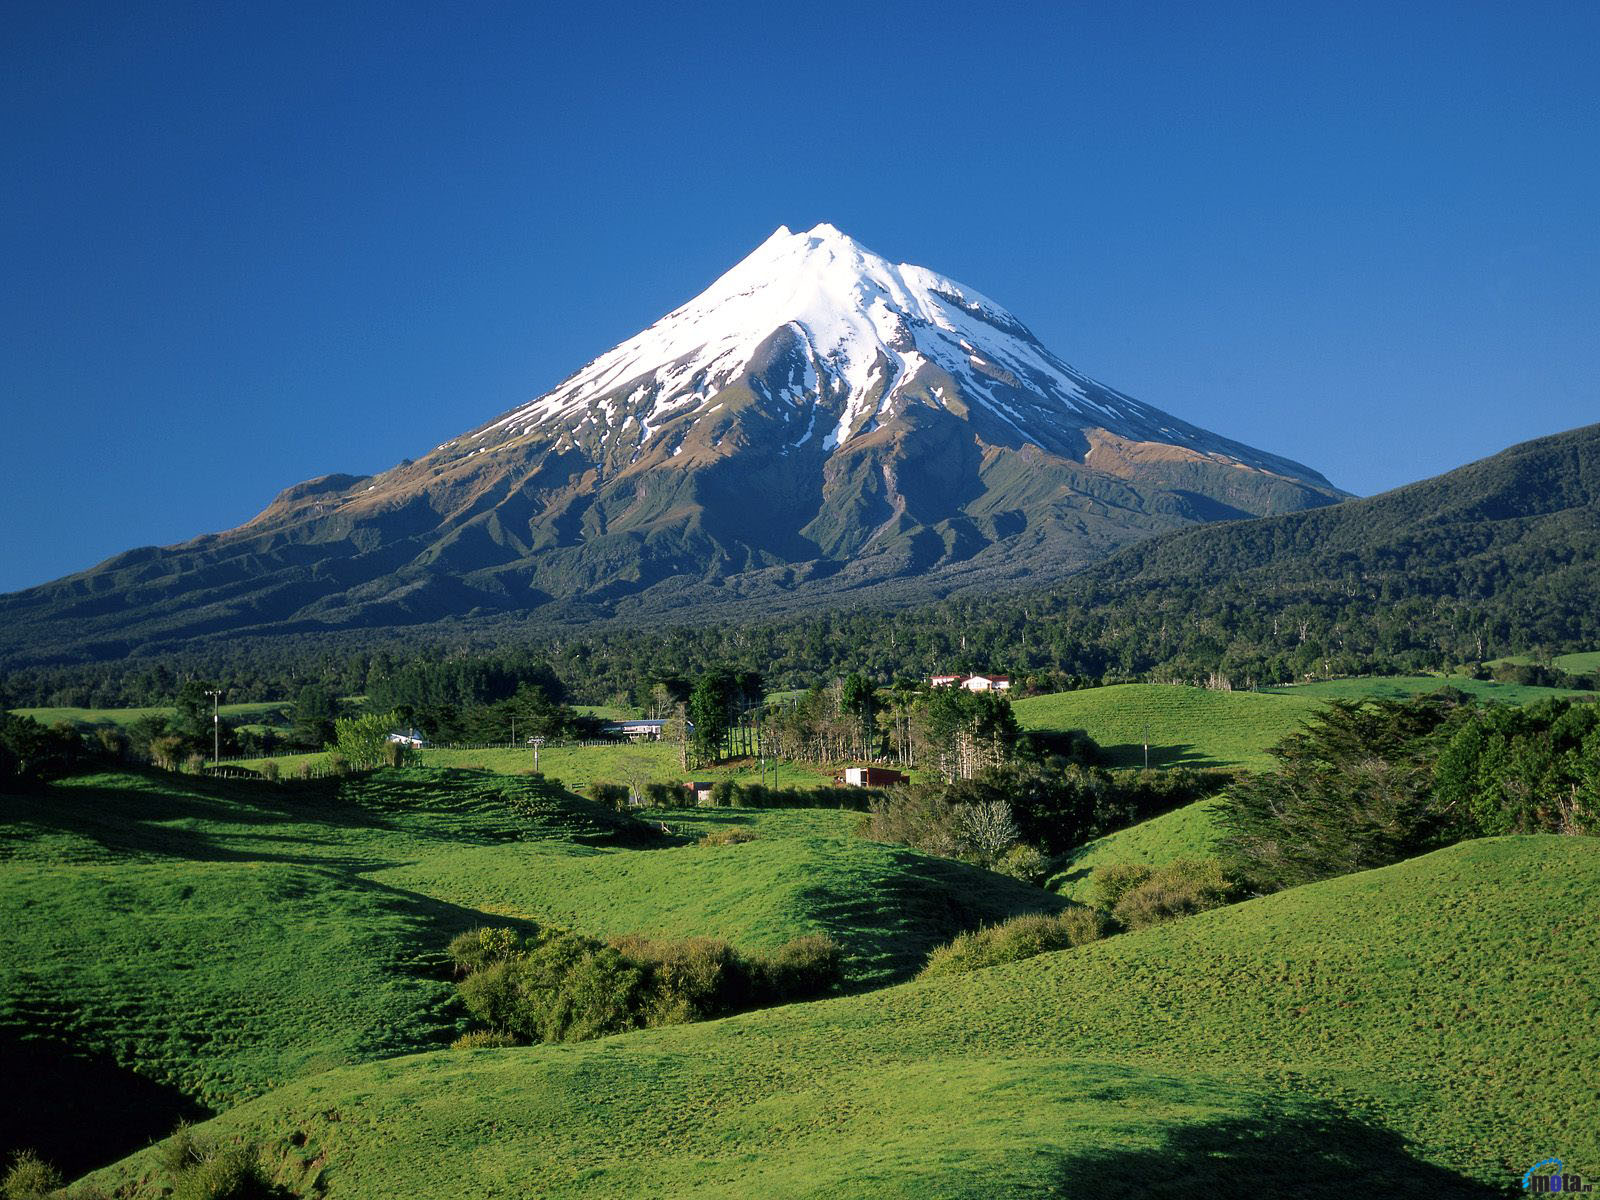 Download Foto Gunung Fujiyama Check Out Download Foto Gunung Fujiyama Cntravel